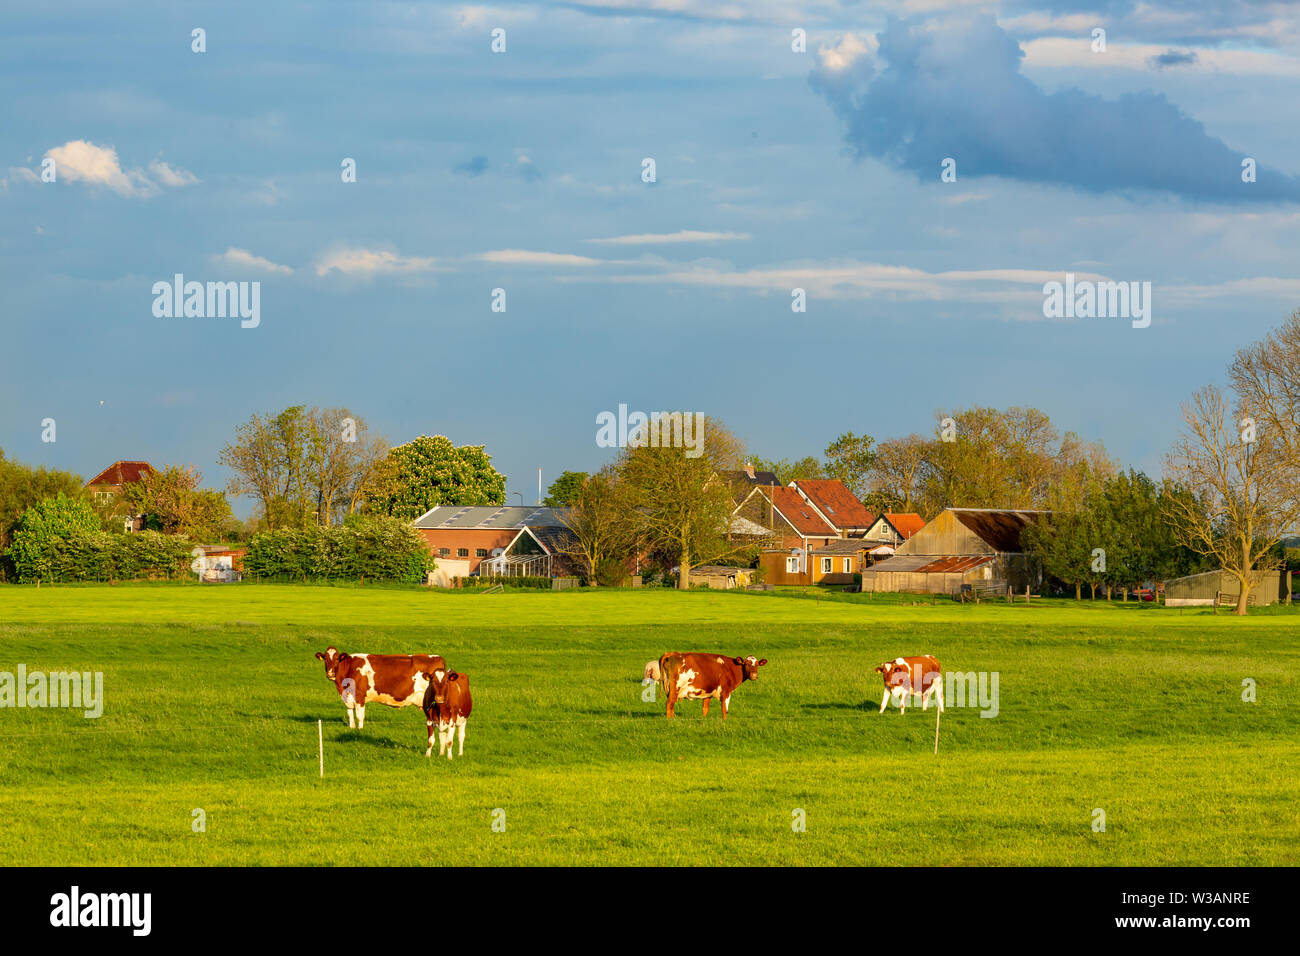 cows cattle in a a a dutch ranch grazing on lush green grass - Stock Image